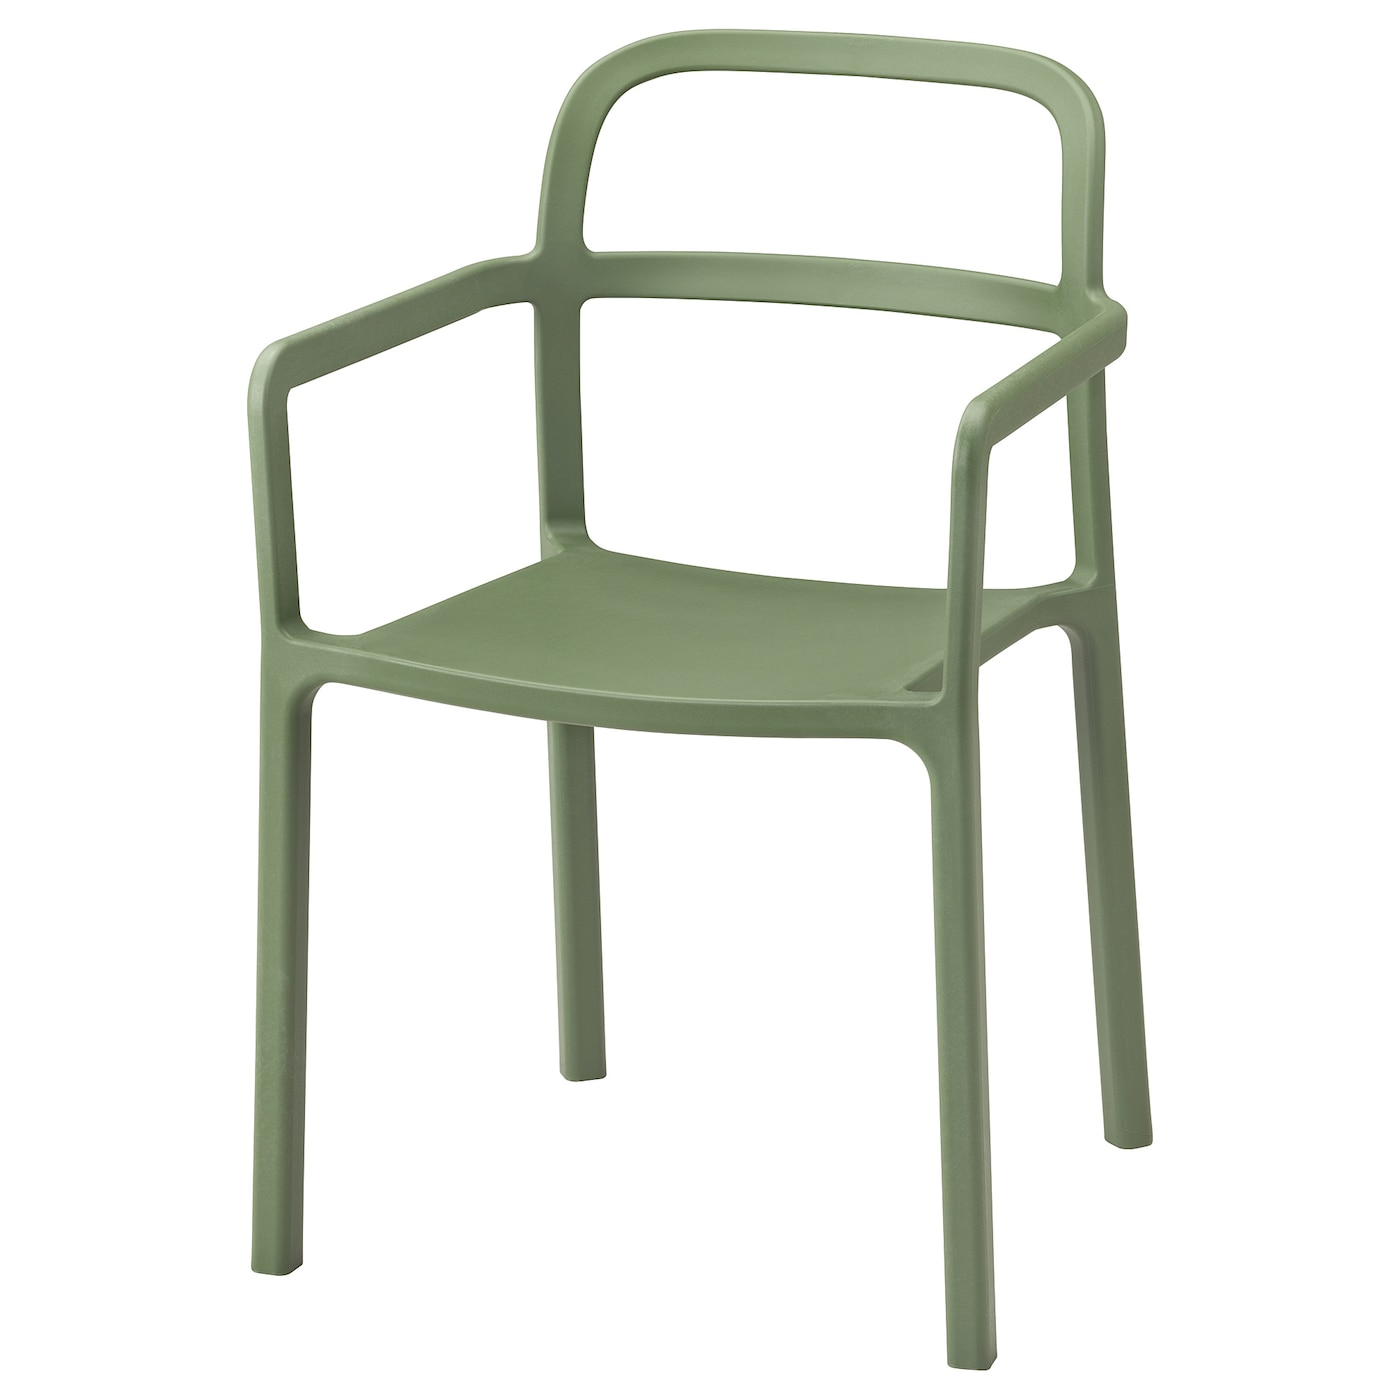 IKEA YPPERLIG chair with armrests, in/outdoor Lightweight, easy to lift and move. Easy to clean